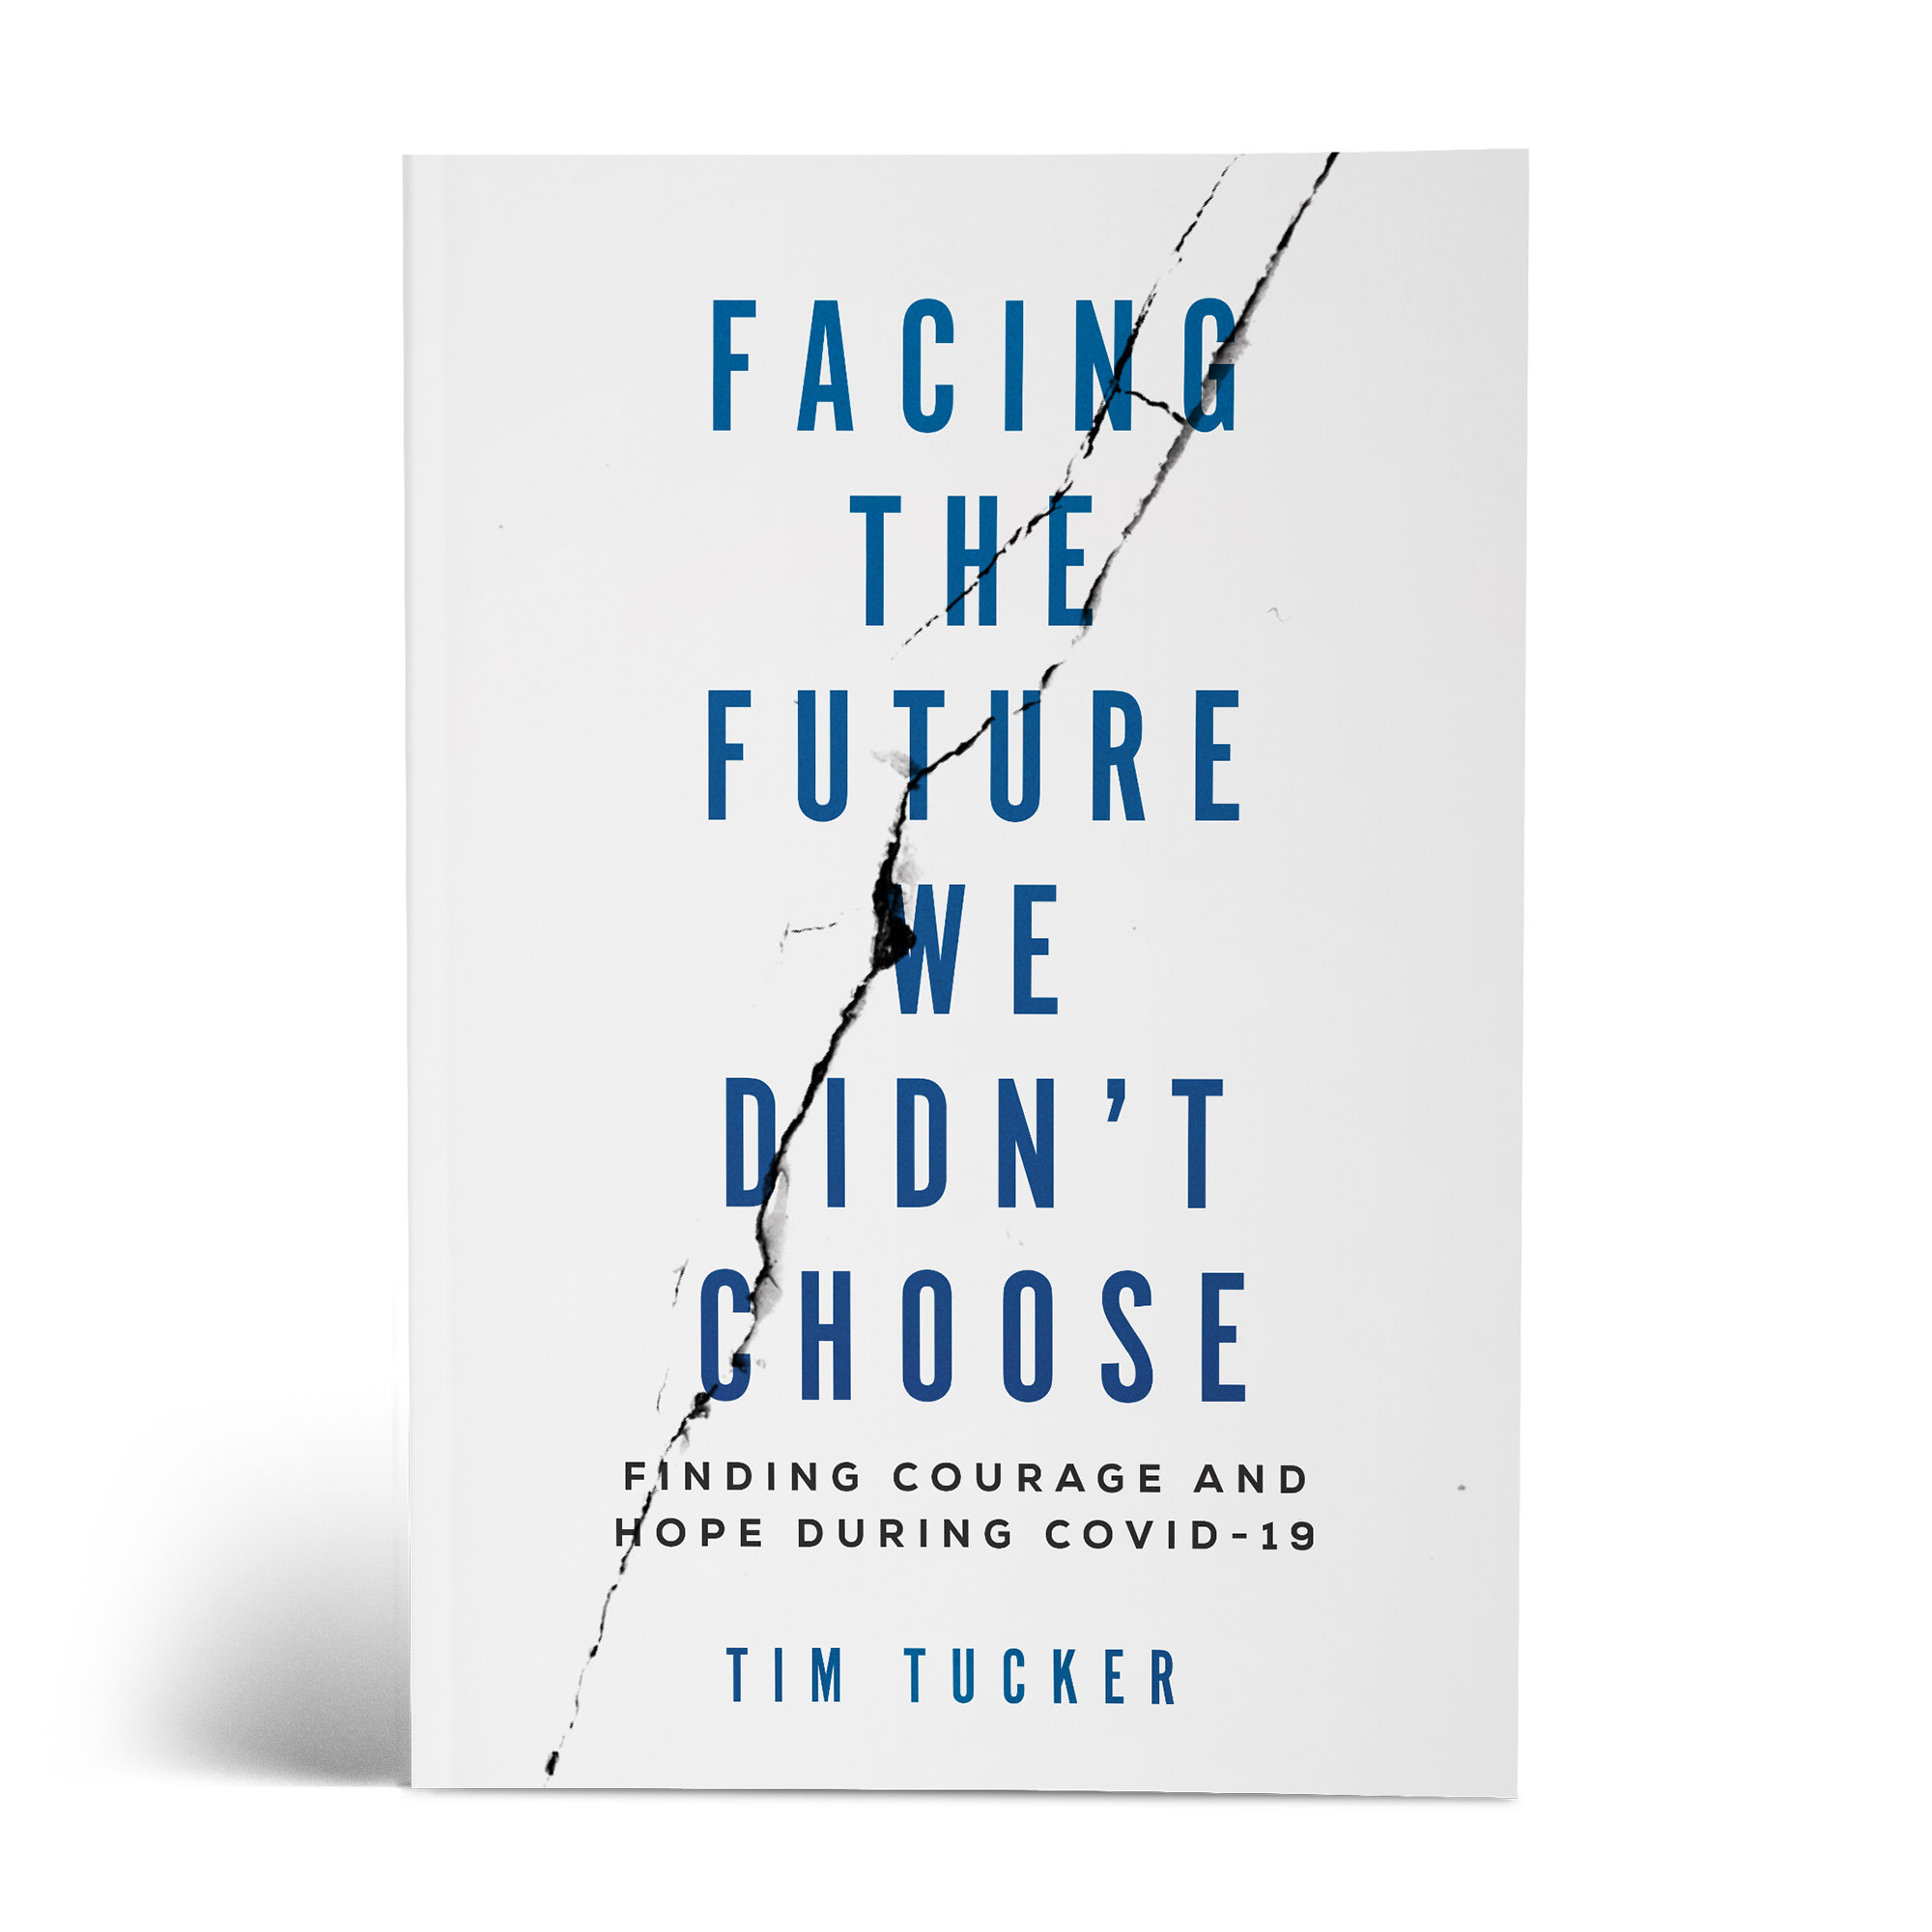 https://shop.message.org.uk/wp-content/uploads/2020/04/FacingTheFuture-Mockup-Paperback.jpg